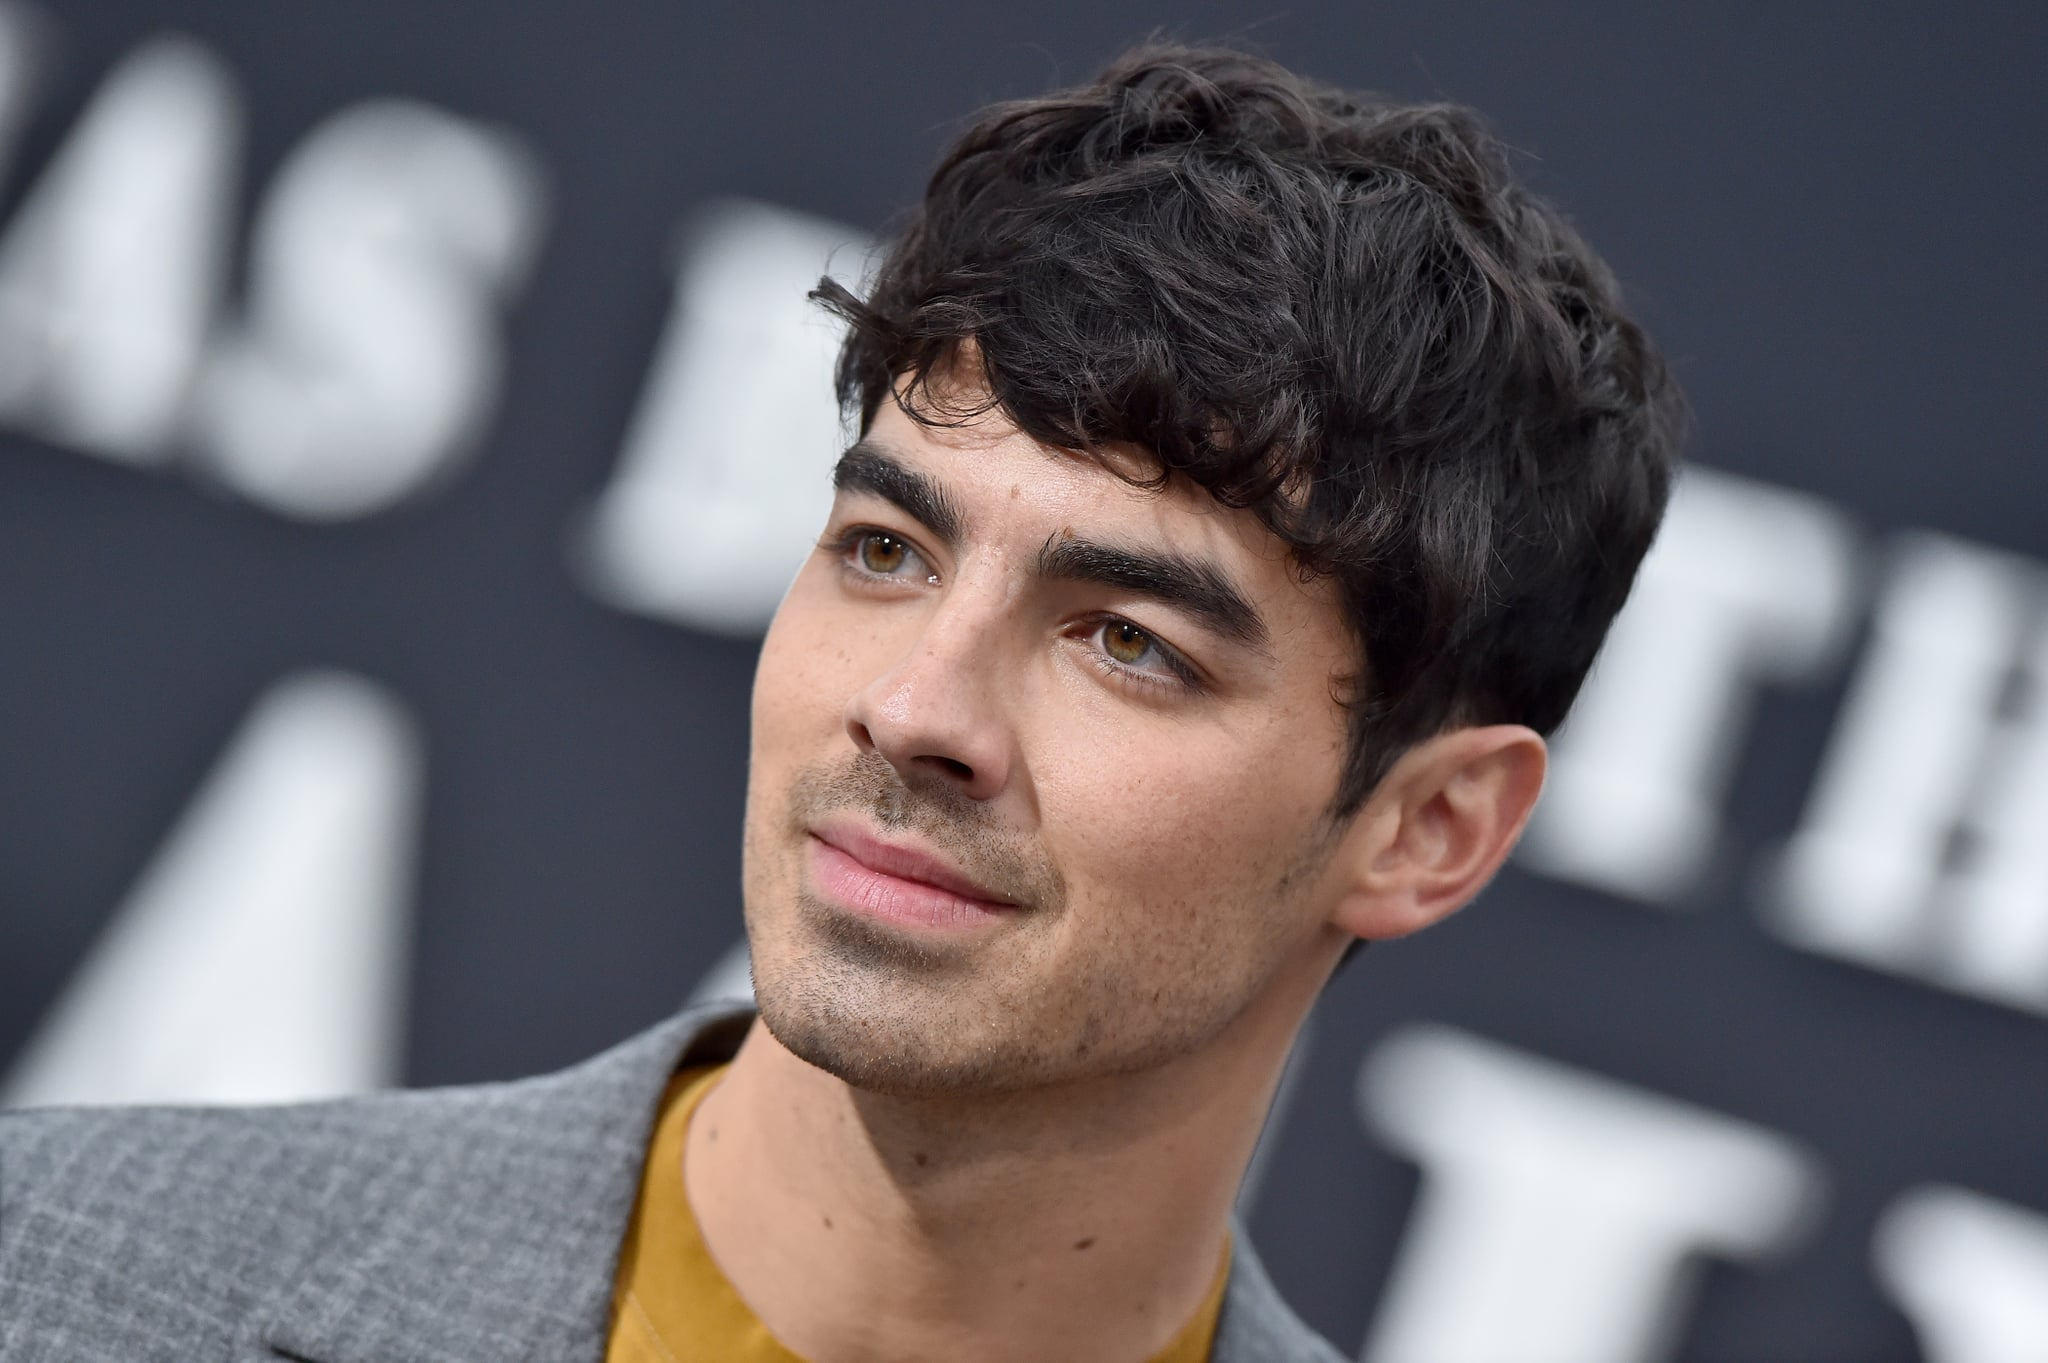 LOS ANGELES, CALIFORNIA - JUNE 03: Joe Jonas attends the premiere of Amazon Prime Video's